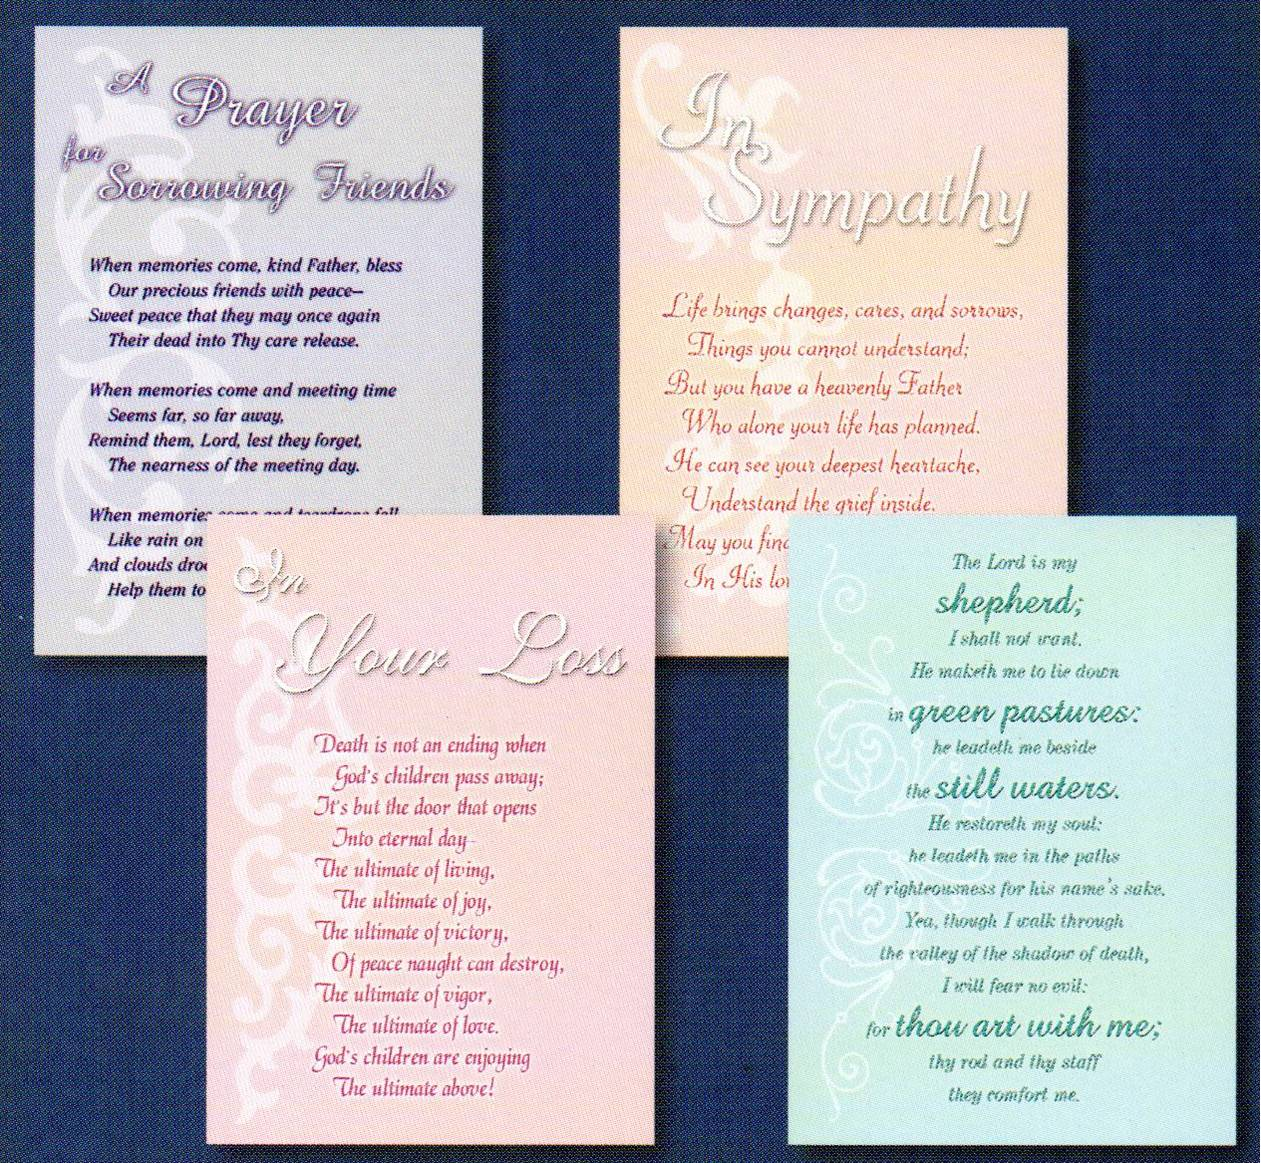 Sympathy Cards - Comfort in Grief - Set of 4 Cards